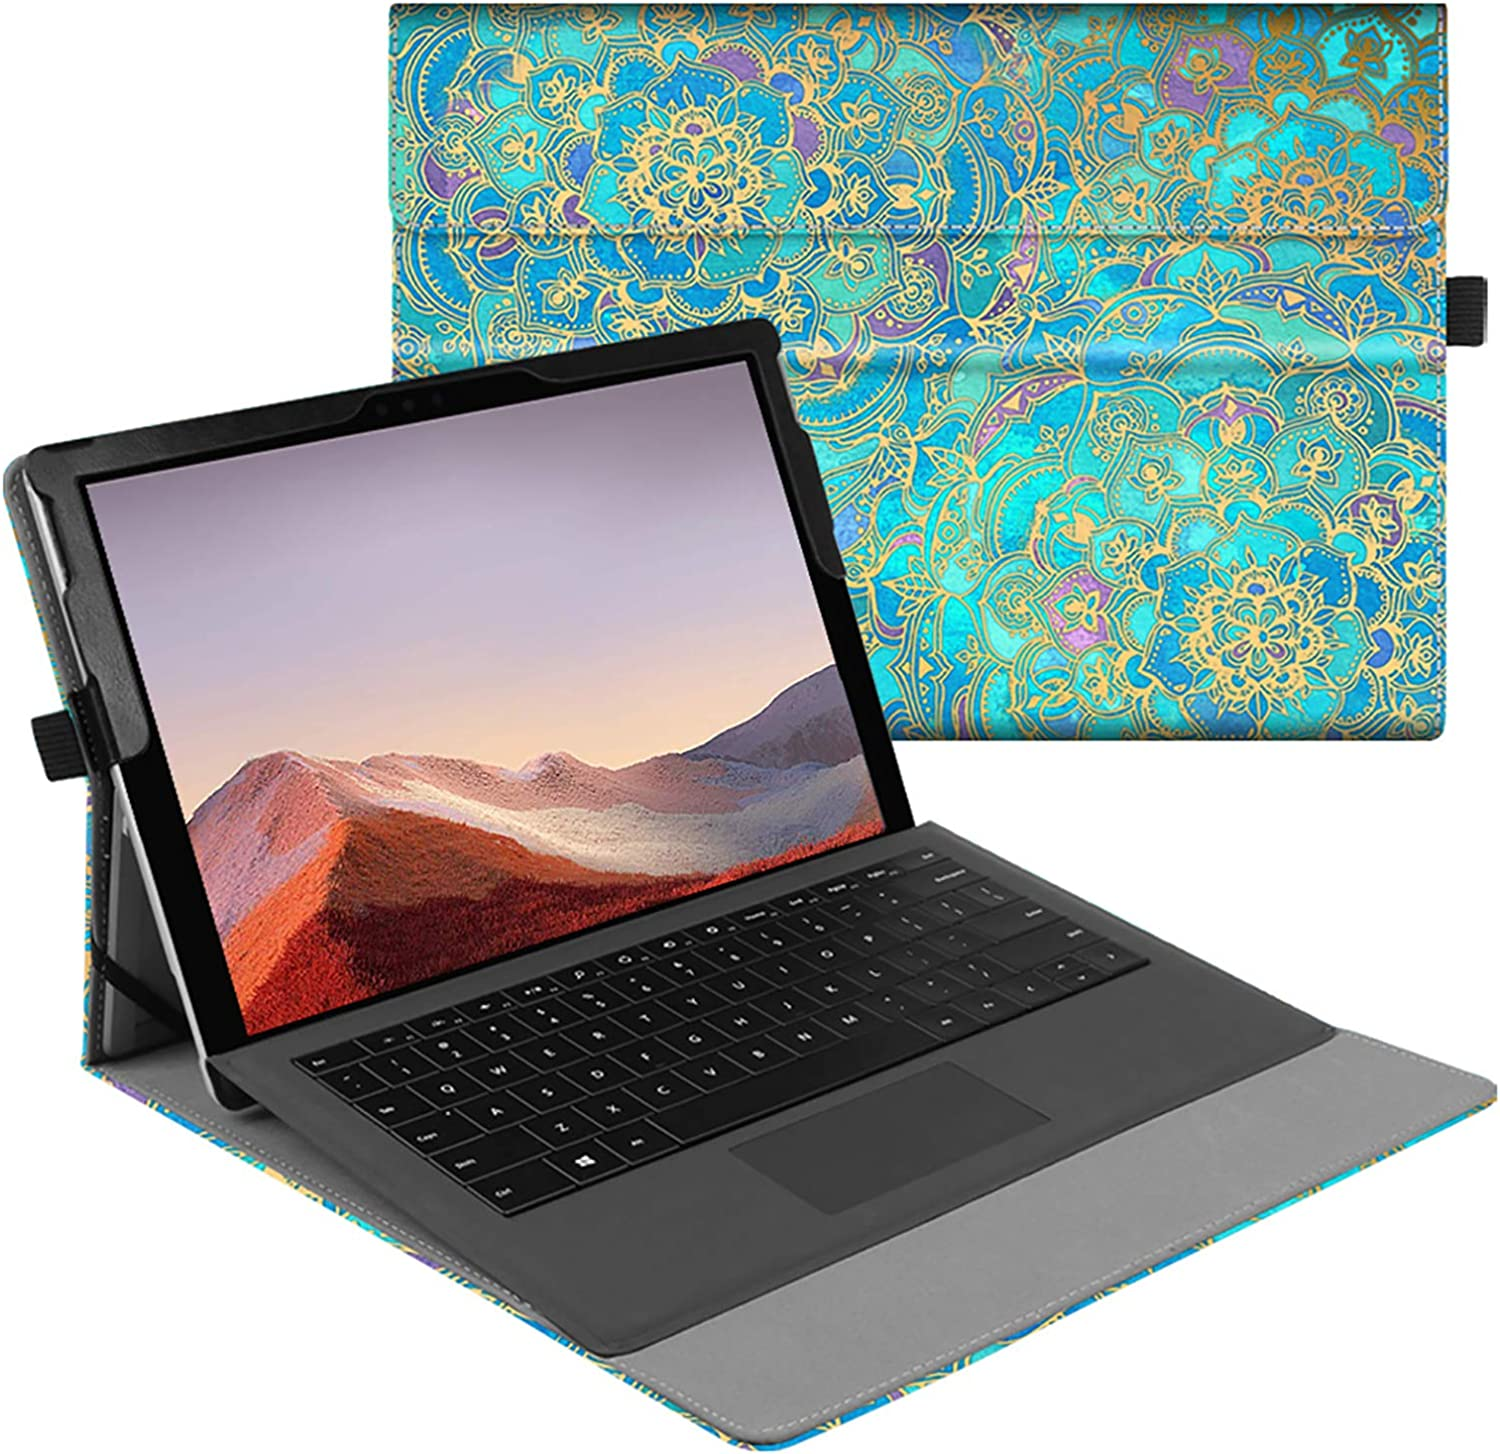 Fintie Case for New Microsoft Surface Pro 7 / Pro 6 / Pro 5 / Pro 4 / Pro 3 12.3 Inch Tablet - Multiple Angle Viewing Portfolio Business Cover, Compatible with Type Cover Keyboard (Shades of Blue)